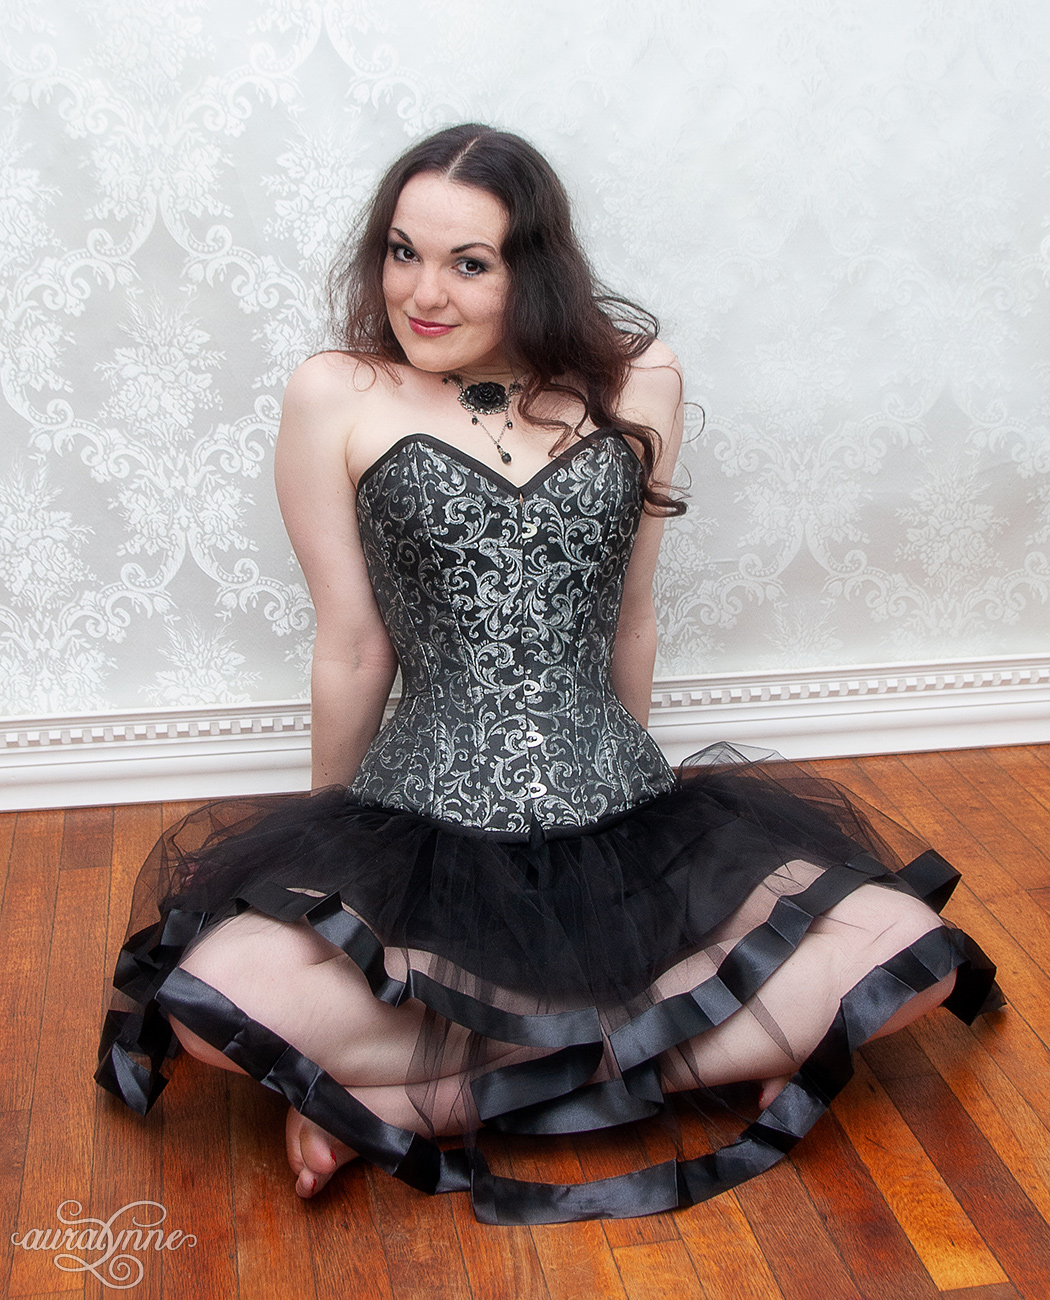 Sitting cross legged in a corset